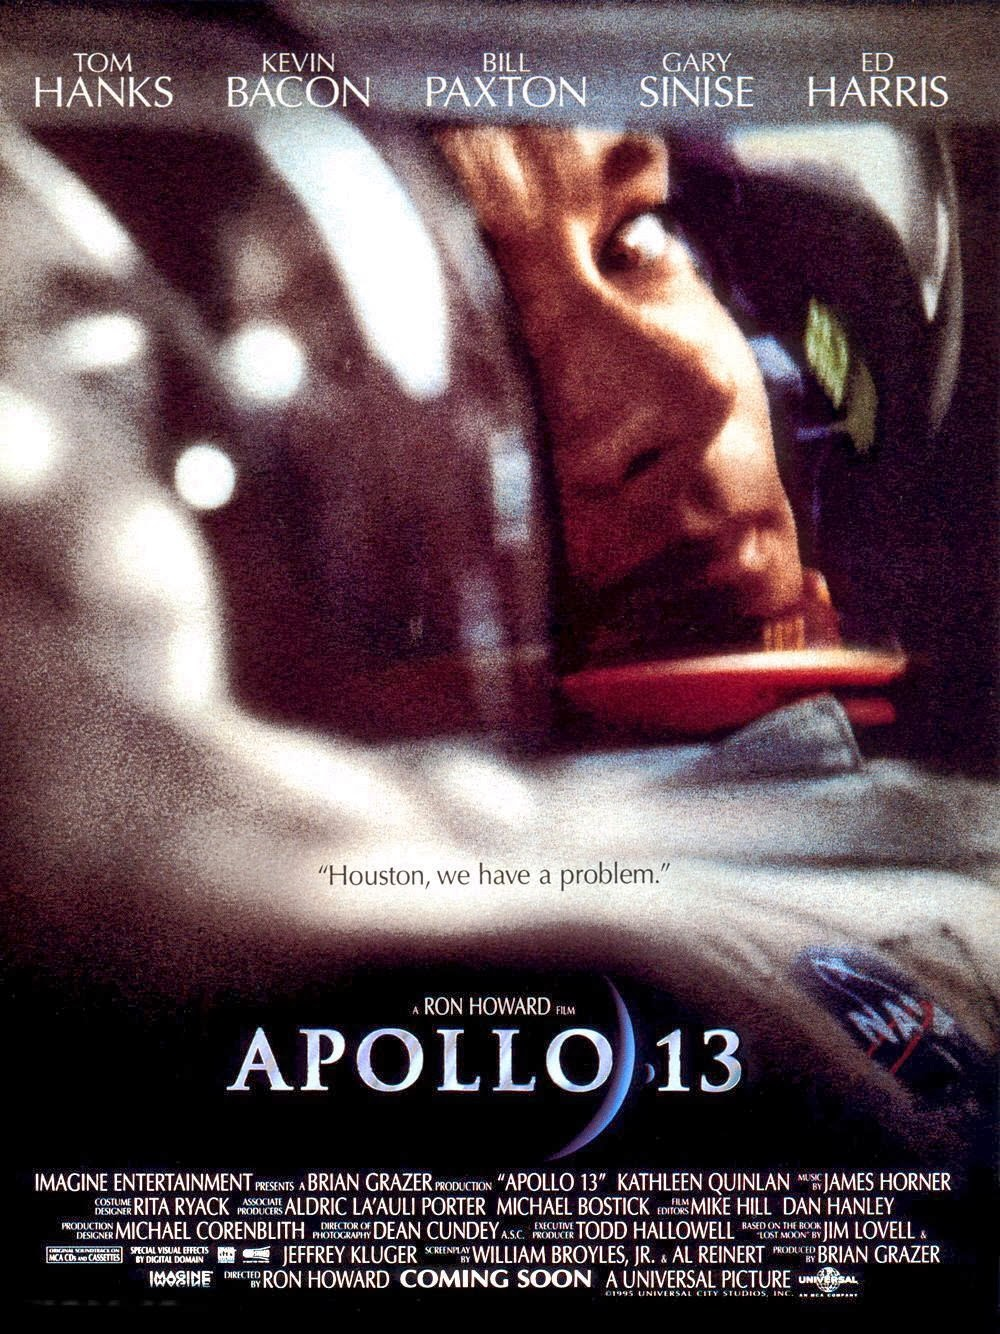 Apollo 13_@screenamovie